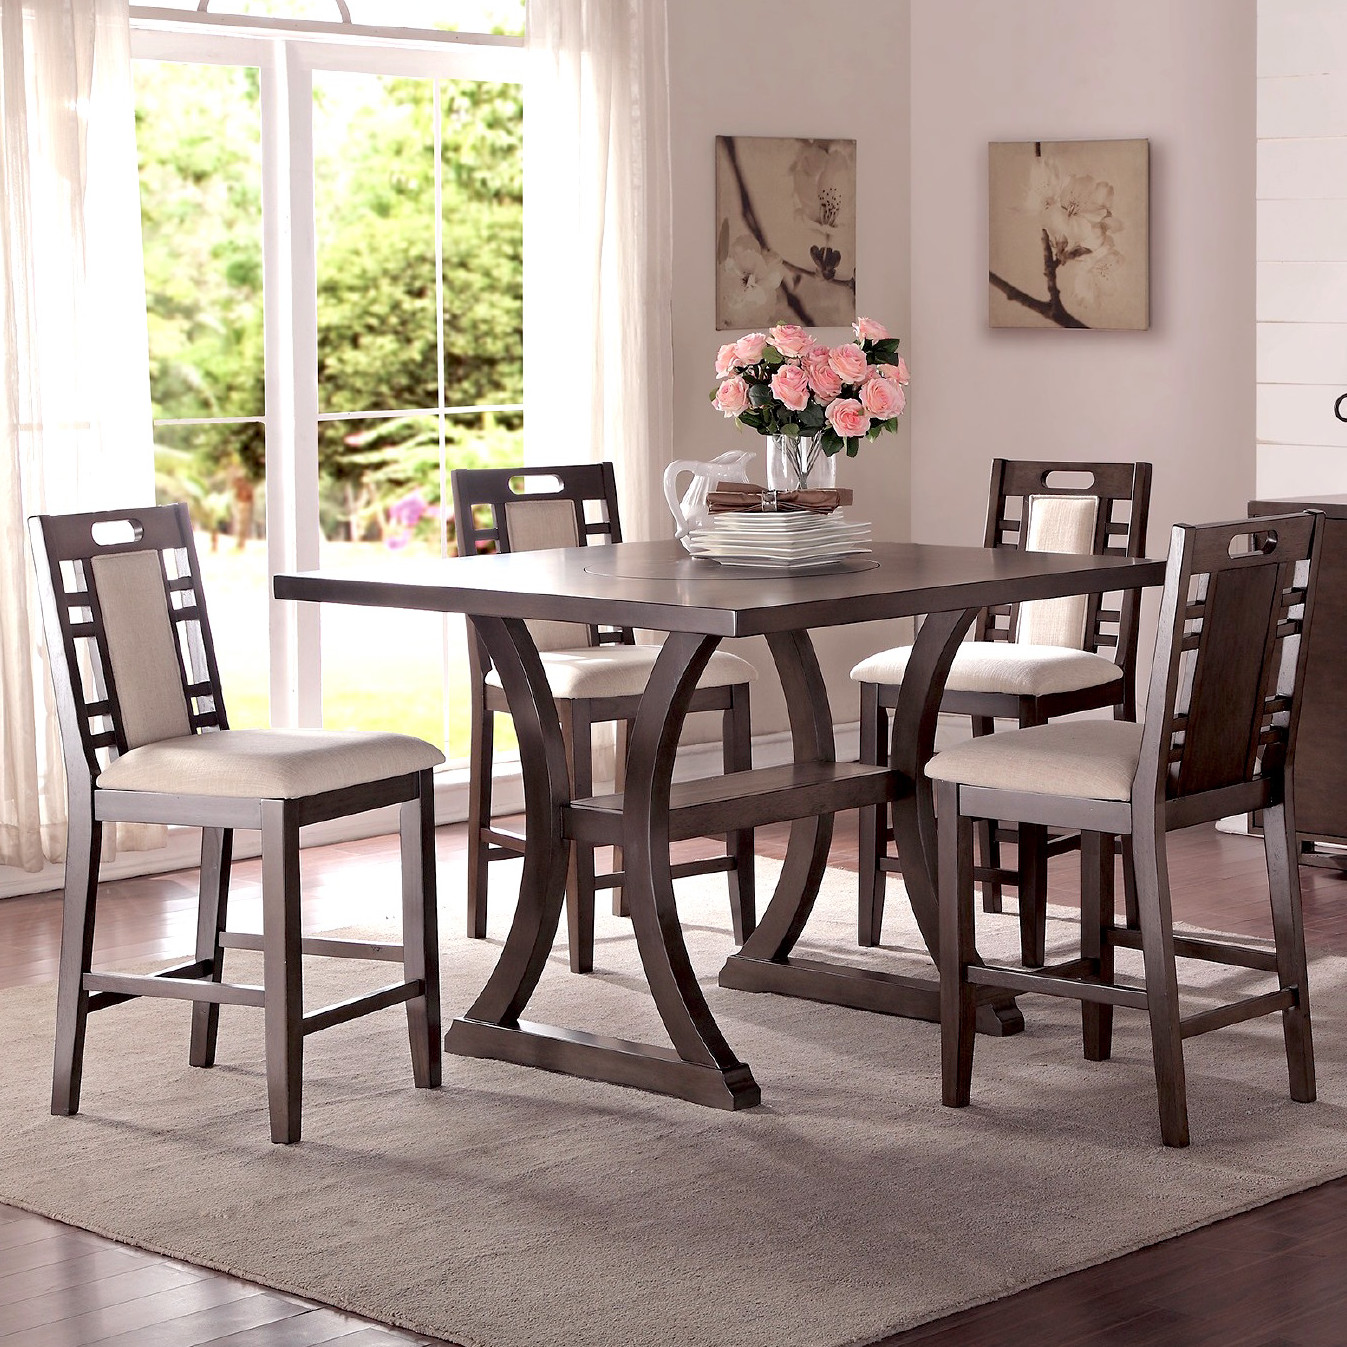 Best Alison 5 Piece Counter Height Dining Set counter height dining set